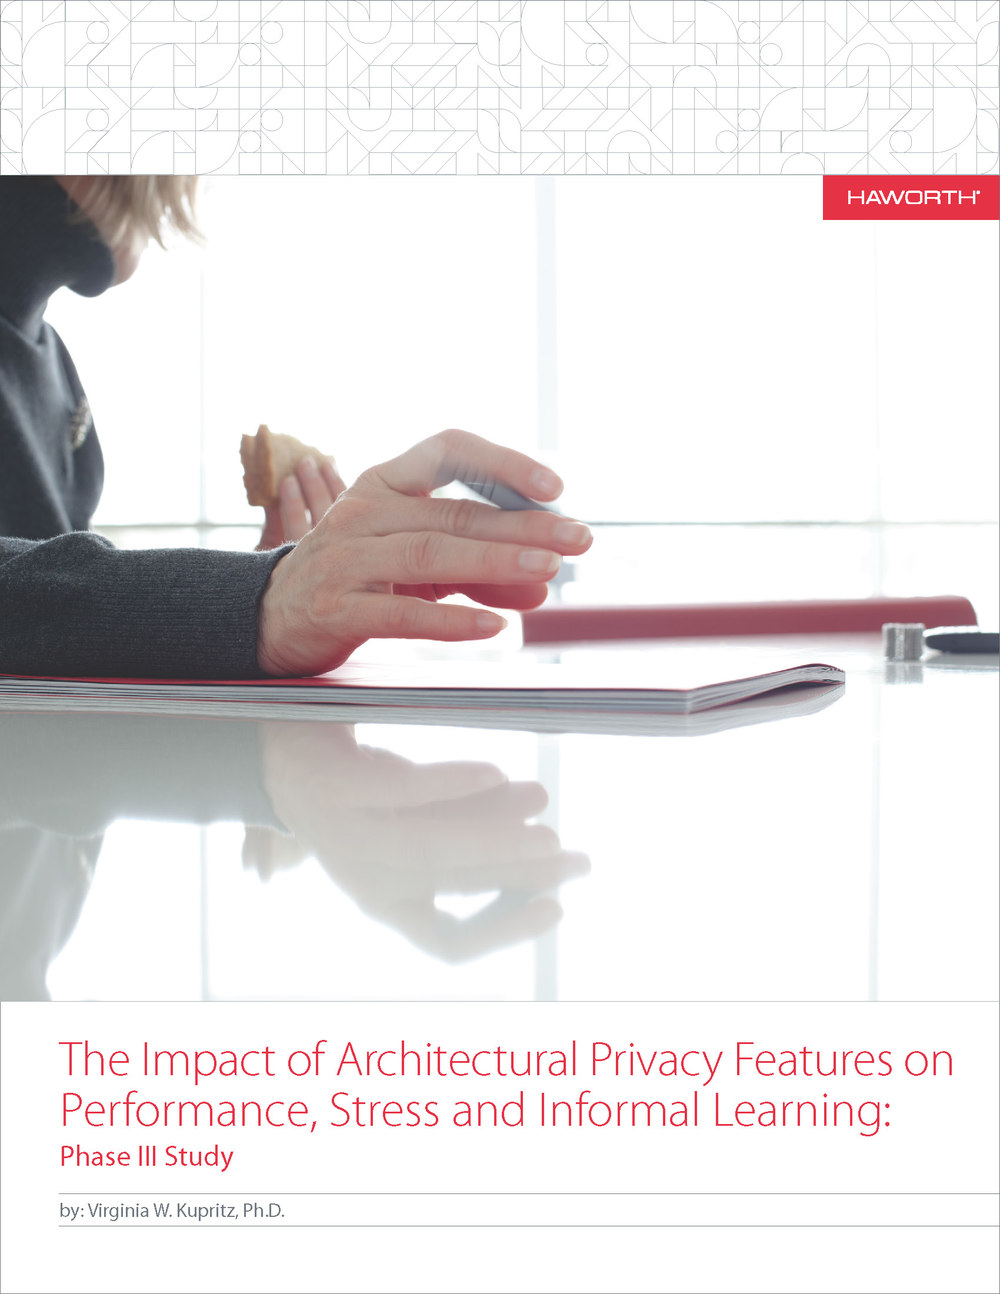 The Impact of Architectural Privacy Features on Performance, Stress and Informal Learning: courtesy of Haworth